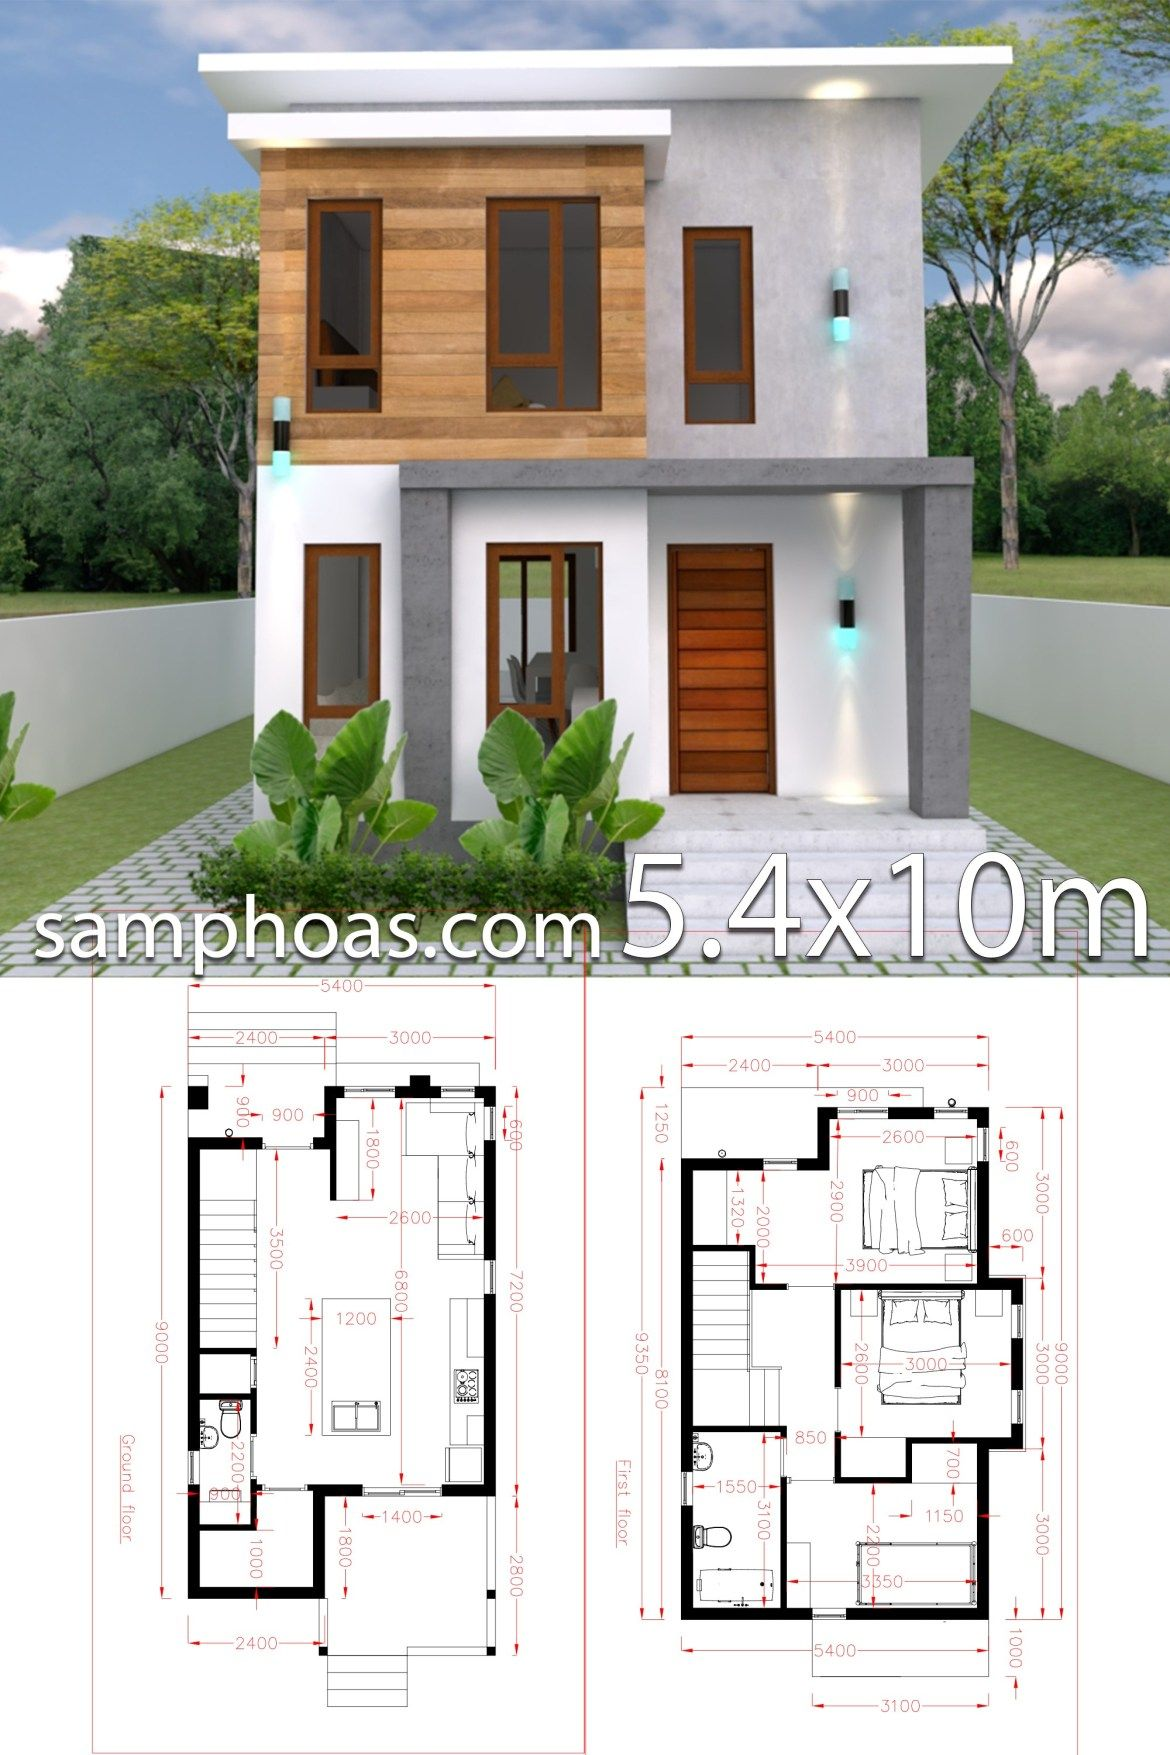 Small Home Design Plan 5 4x10m With 3 Bedroom Samphoas Plansearch House Front Design Small House Design Plans Model House Plan